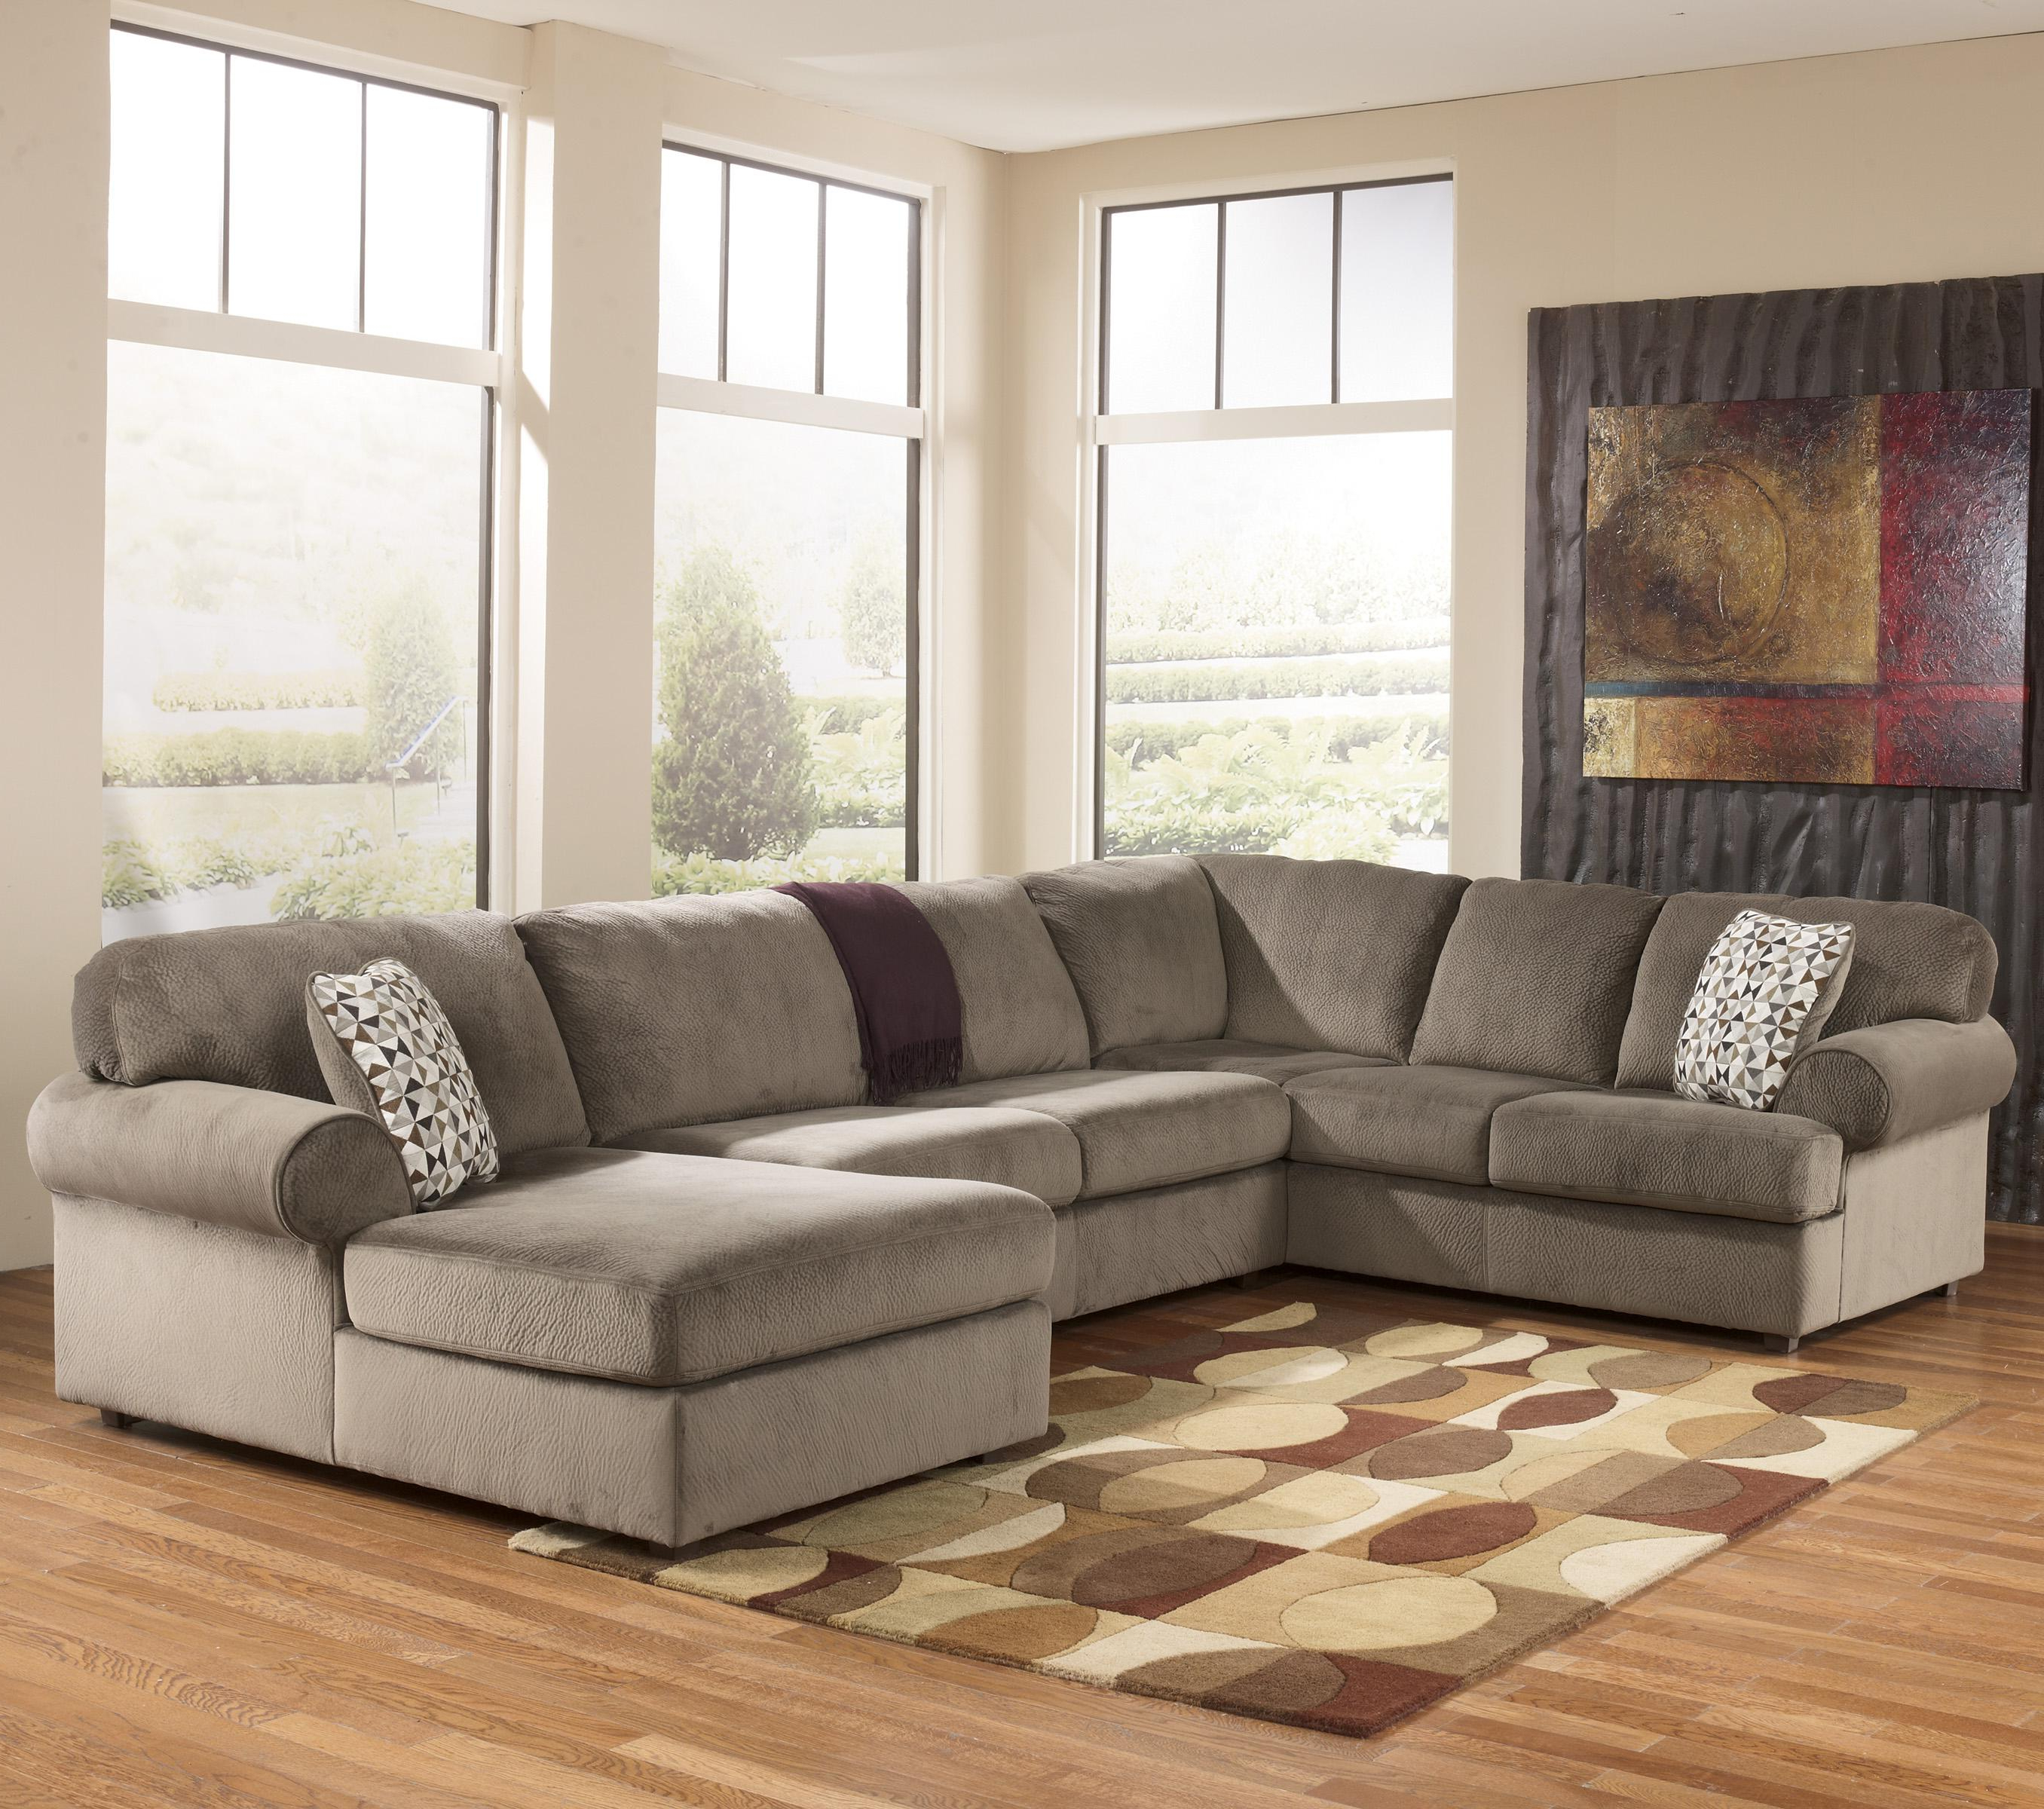 Laf Chaise Sectional Sofa (View 14 of 20)